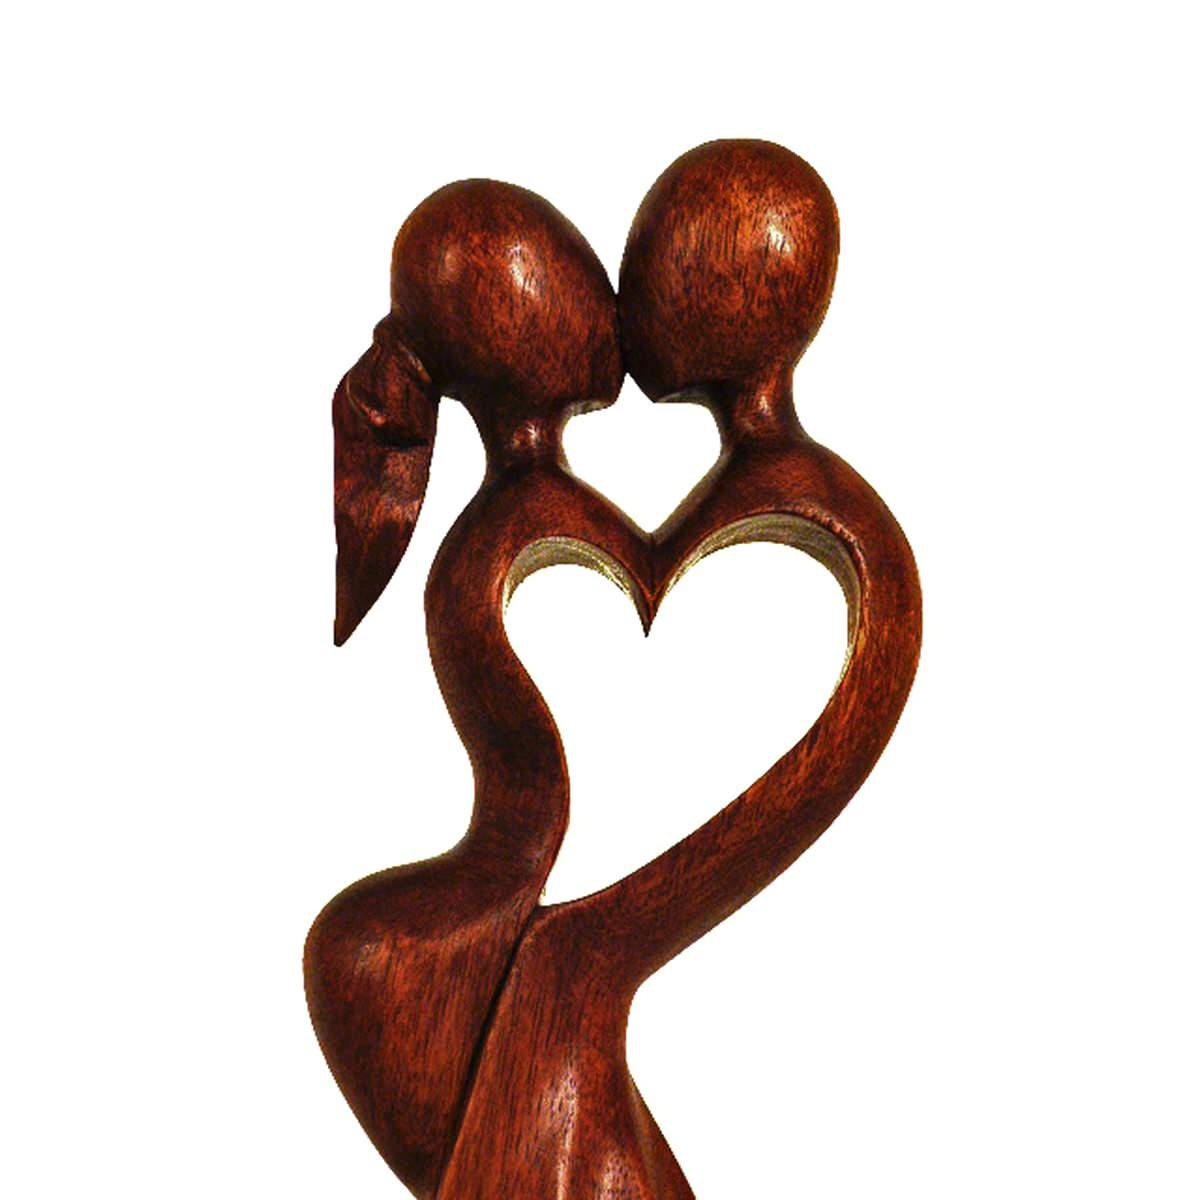 holz figur skulptur abstrakt holzfigur afrika asia handarbeit deko hochzeit ebay. Black Bedroom Furniture Sets. Home Design Ideas